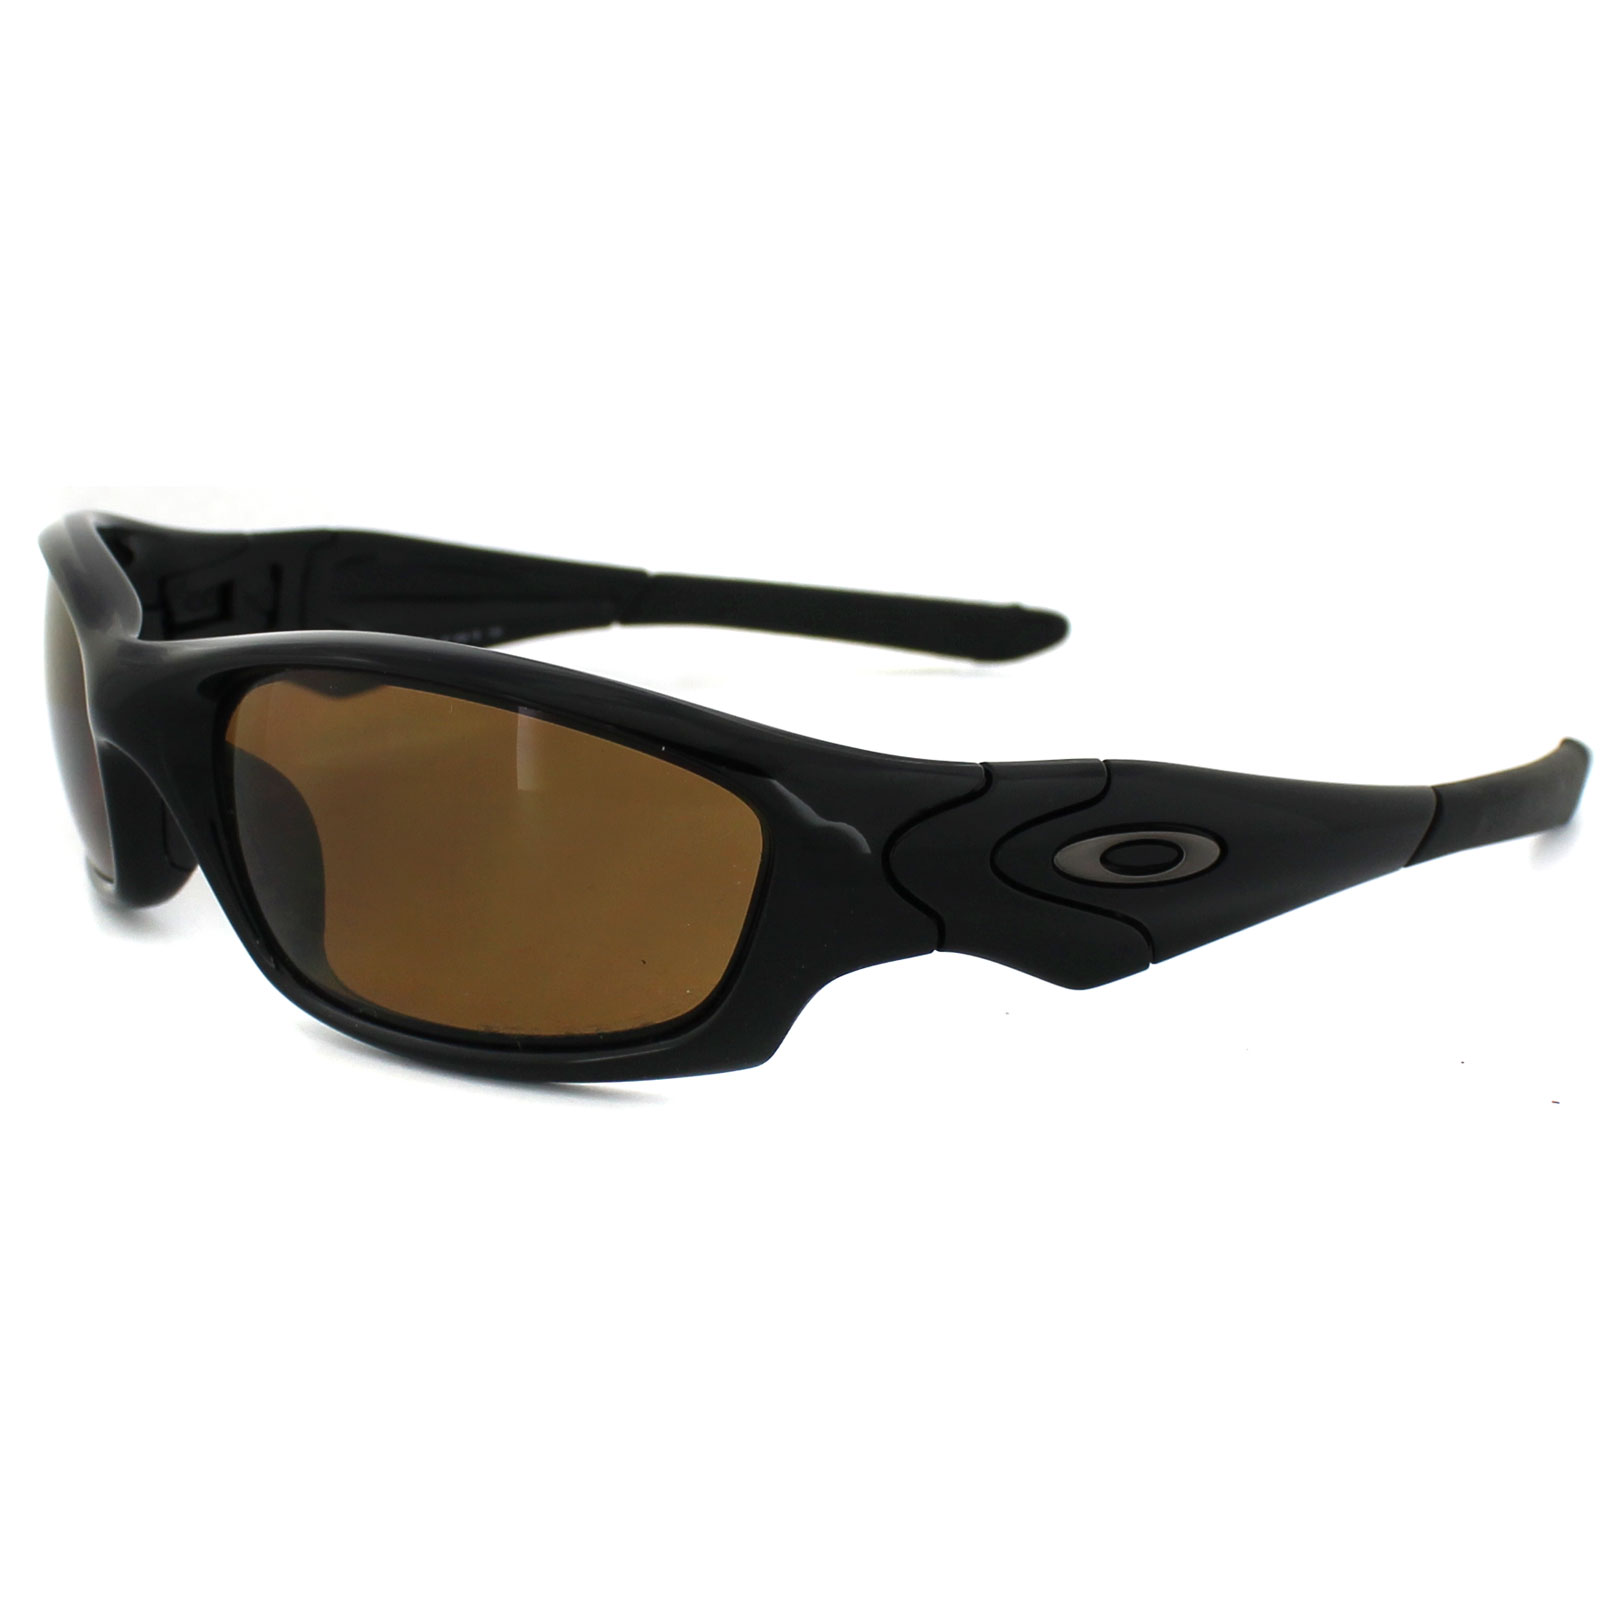 Lzhjzmgkf2ttizt Oakley Sunglasses For Sale